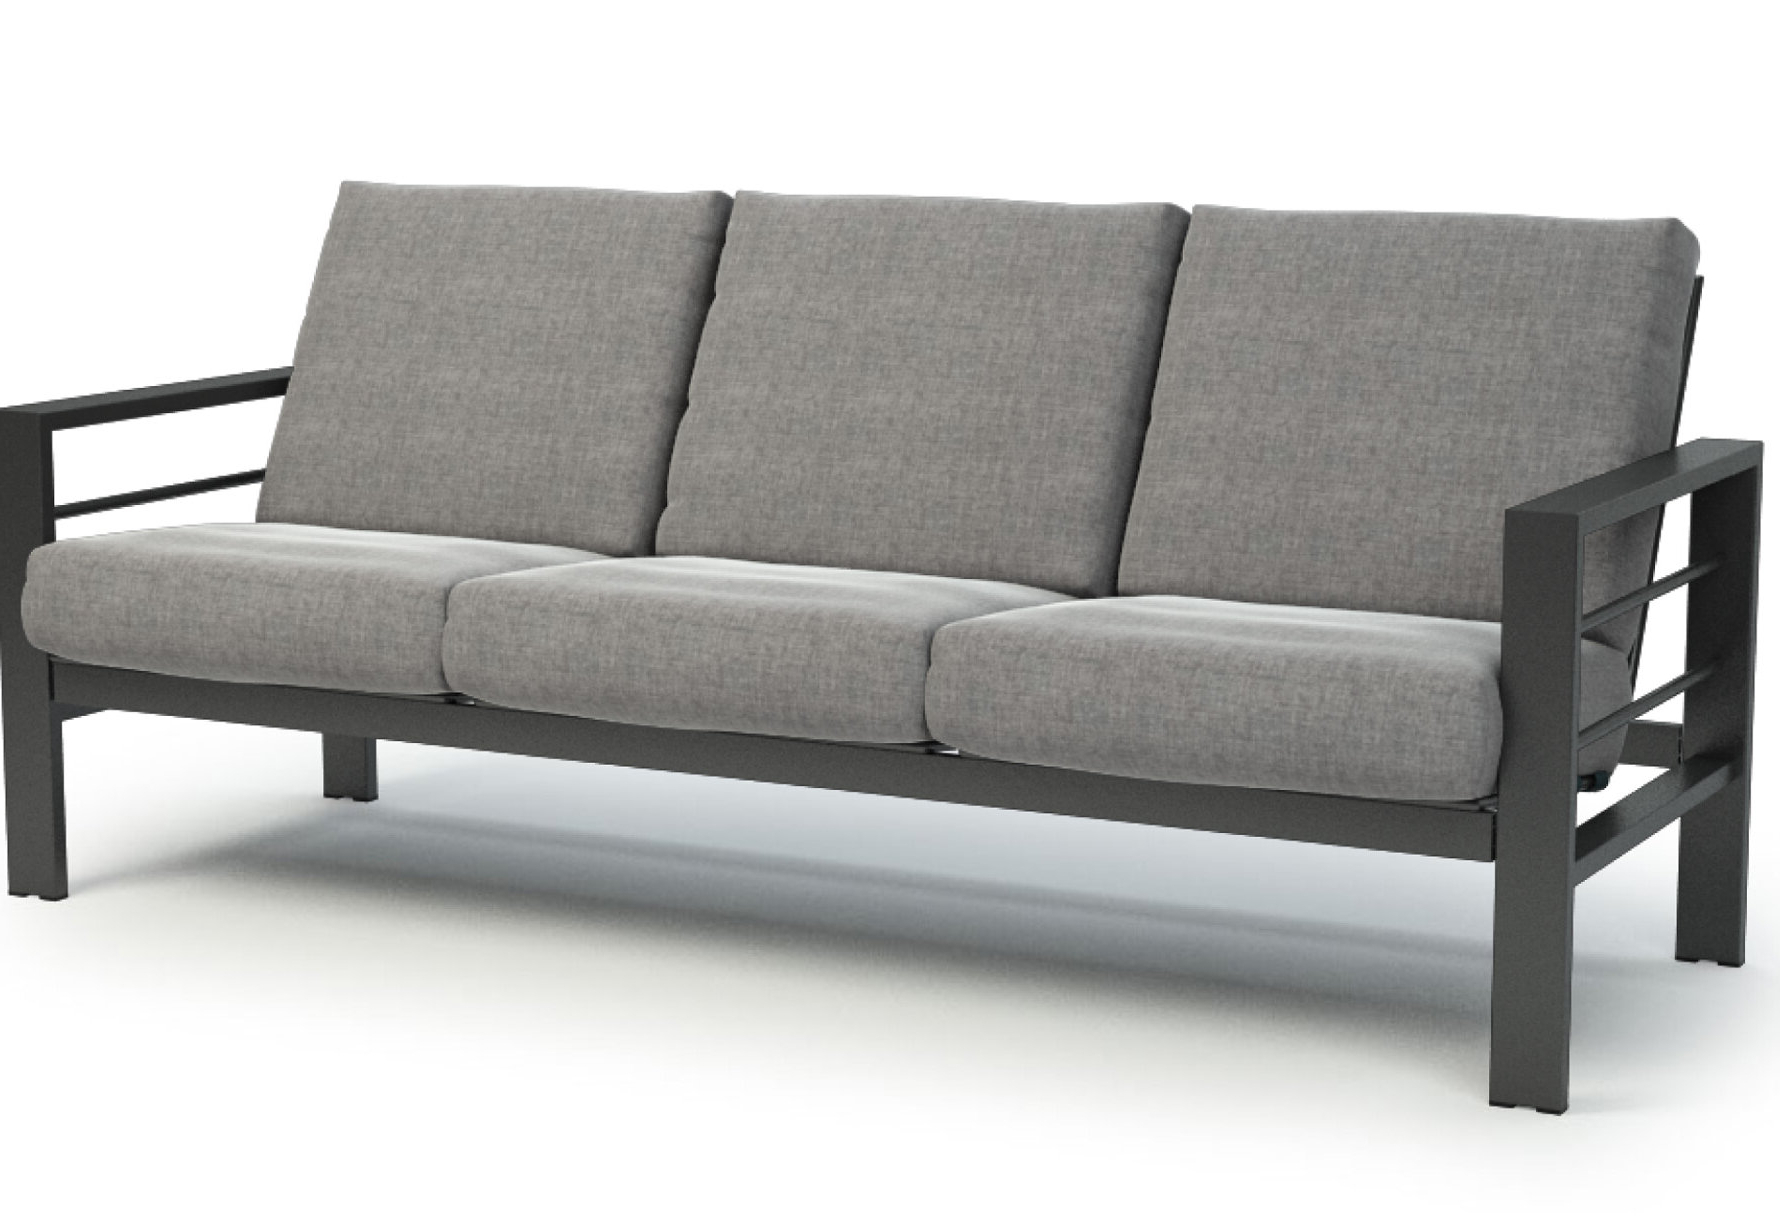 Shufelt Low Back Patio Sofa With Sunbrella Cushions For Well Known Furst Patio Sofas With Cushion (View 16 of 20)